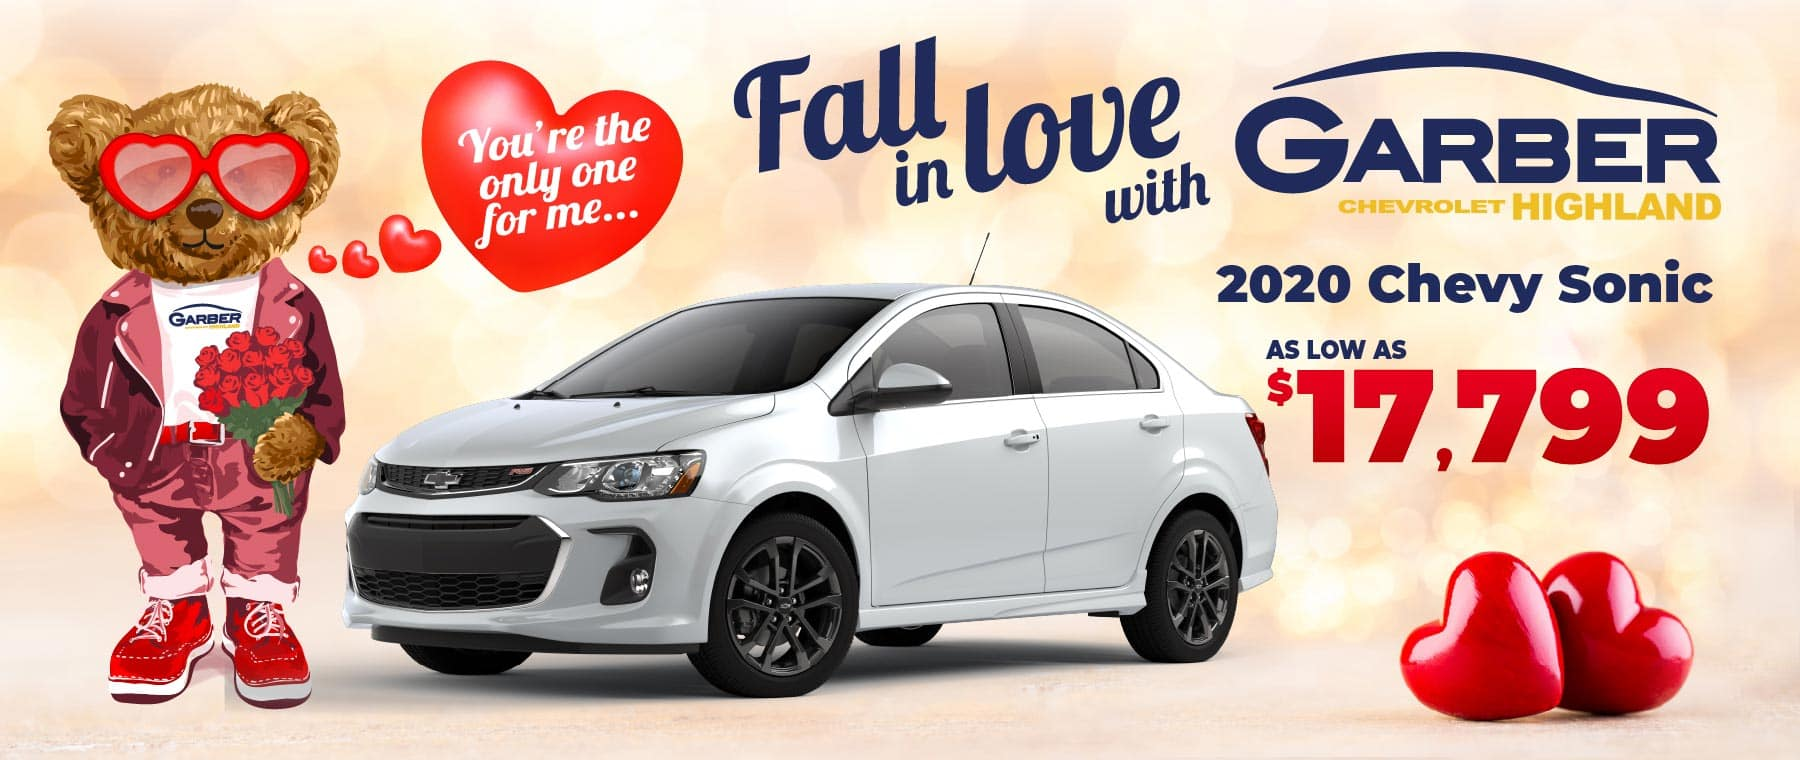 2020 Chevy Sonic - as low as $17,799